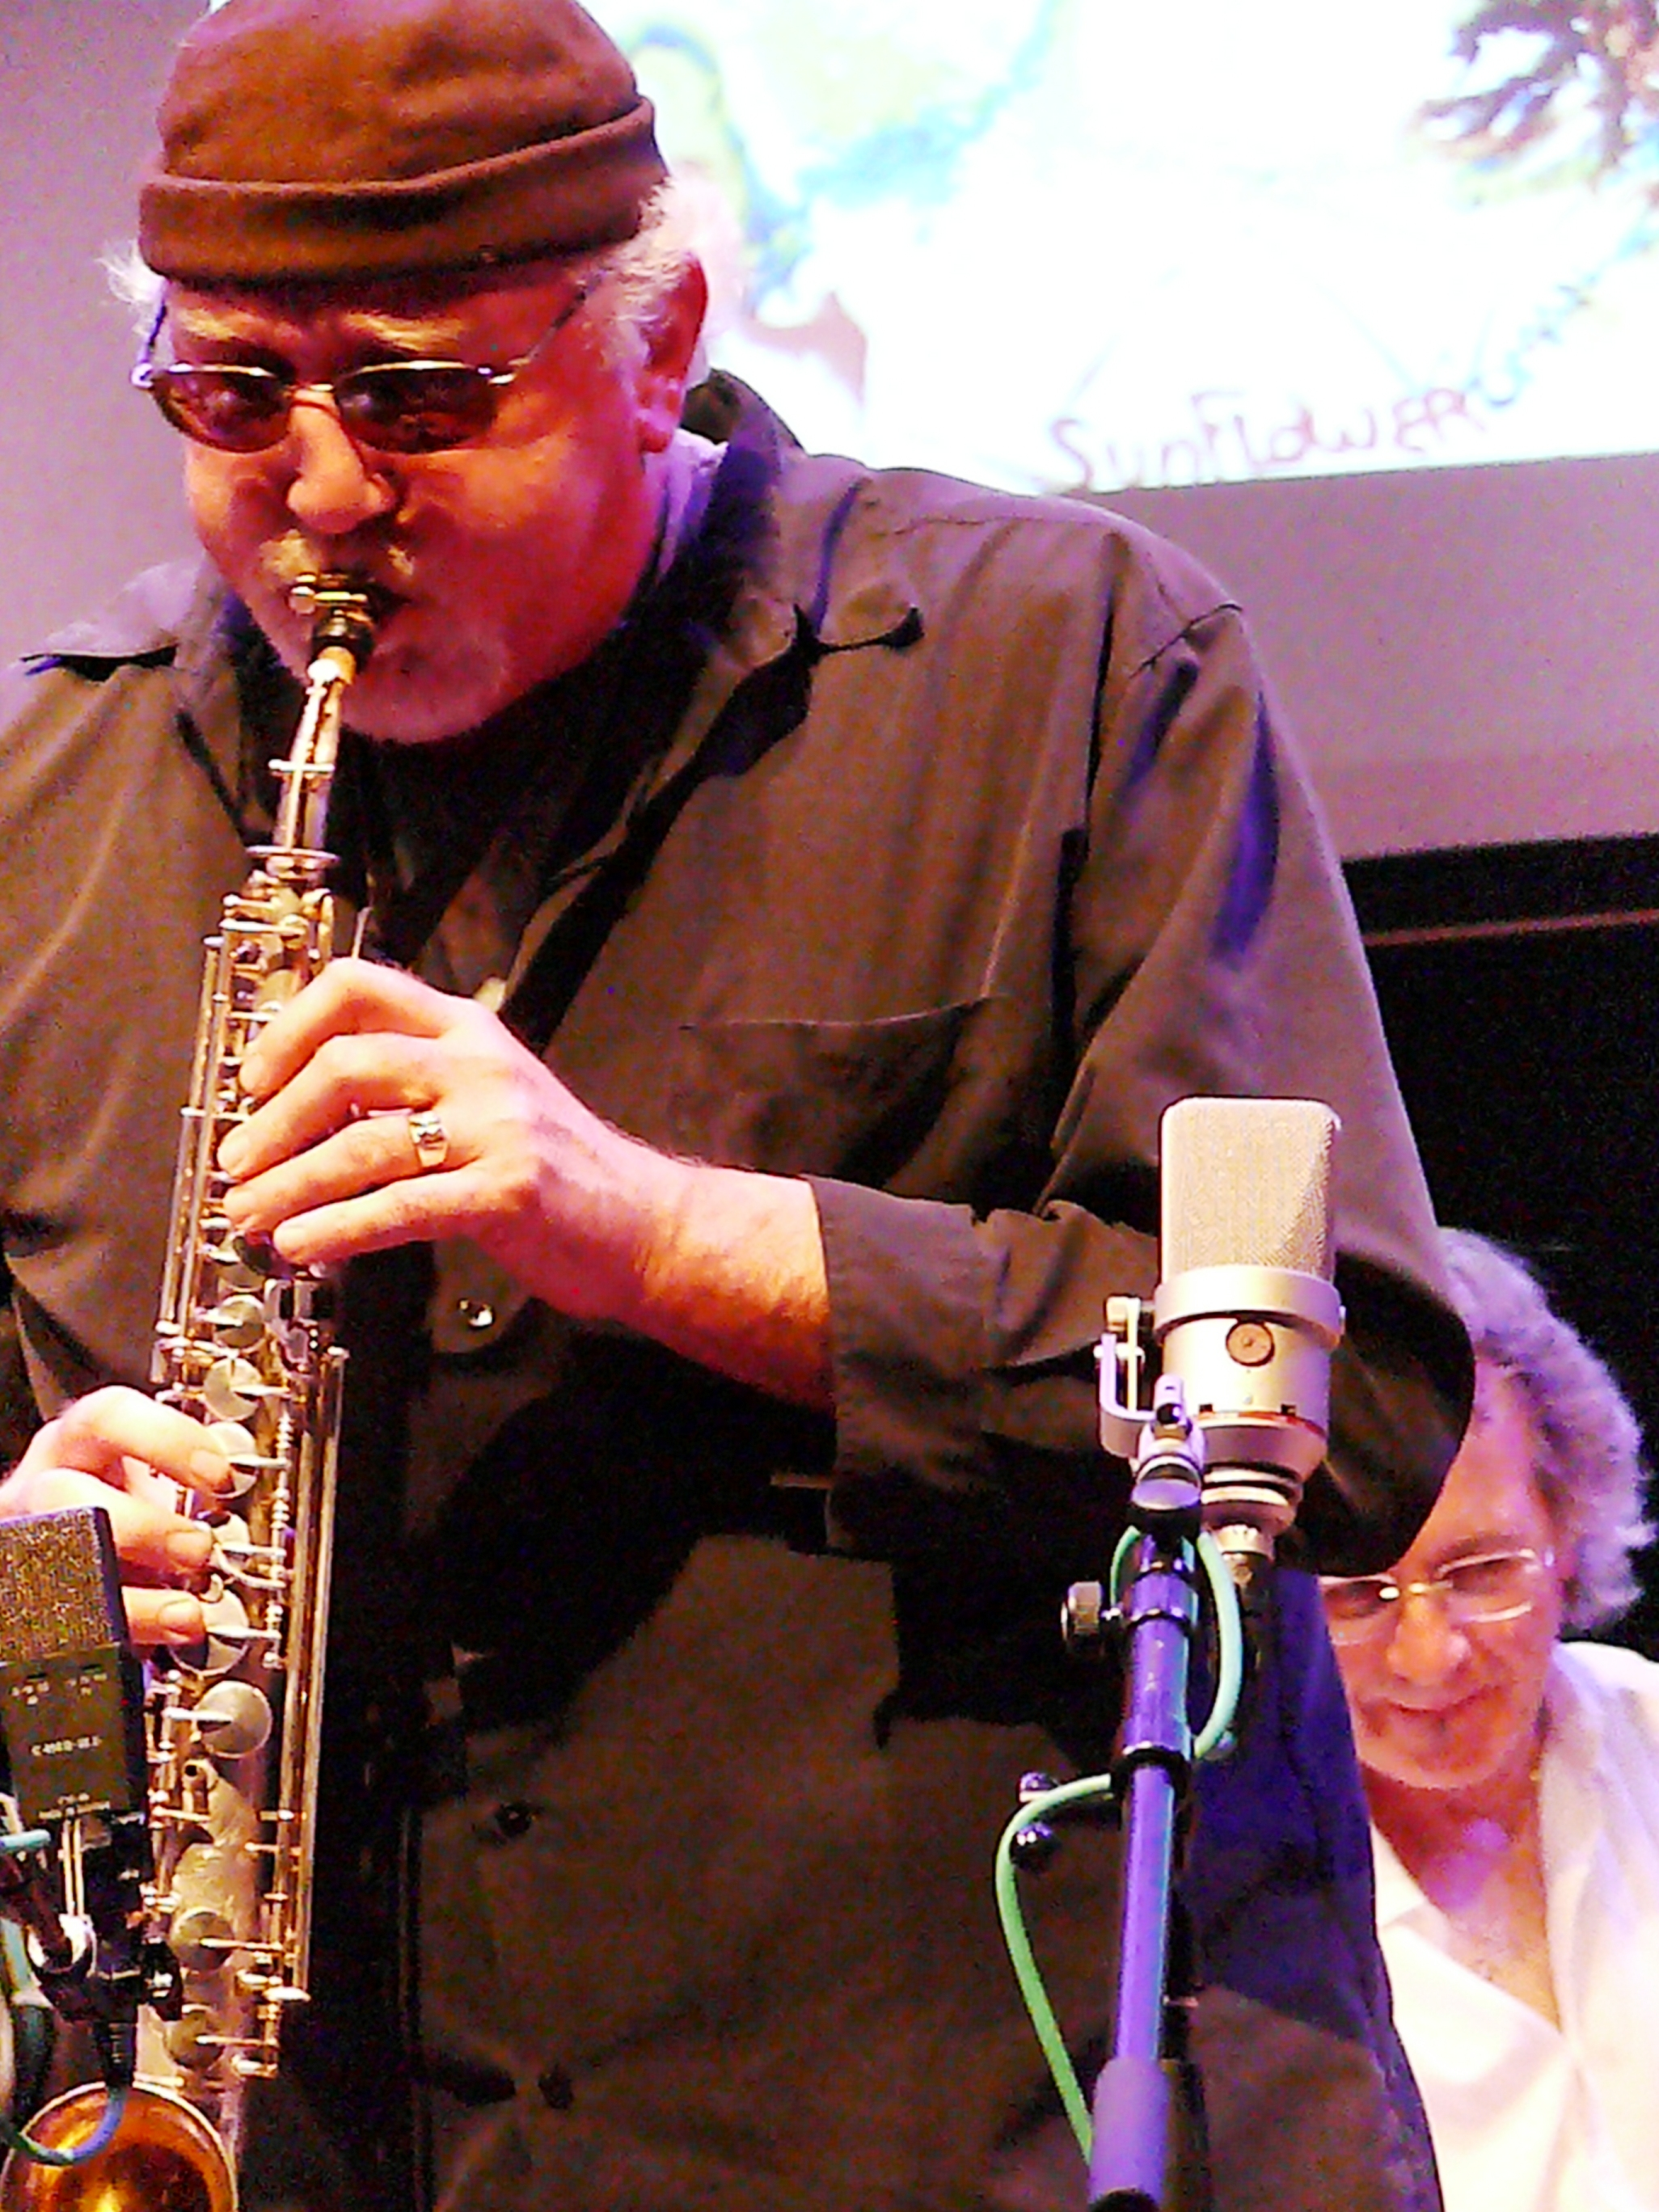 Joe Giardullo at the Vision Festival, NYC in June 2012